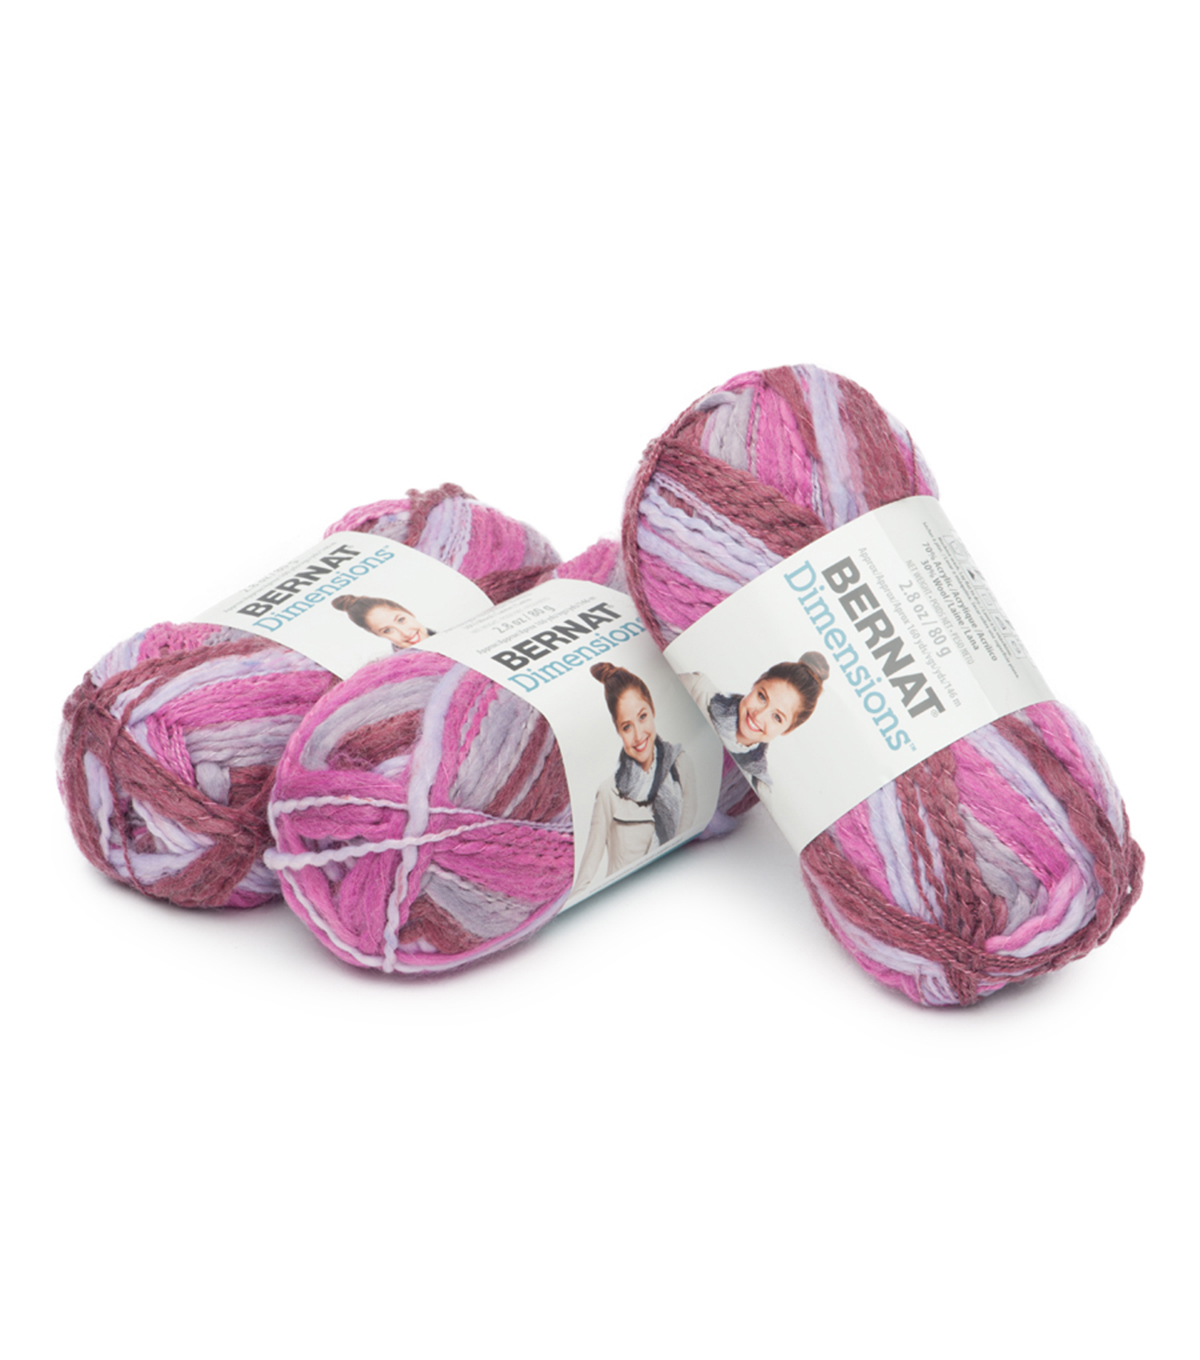 Bernat® Dimensions Yarn 3 Pack